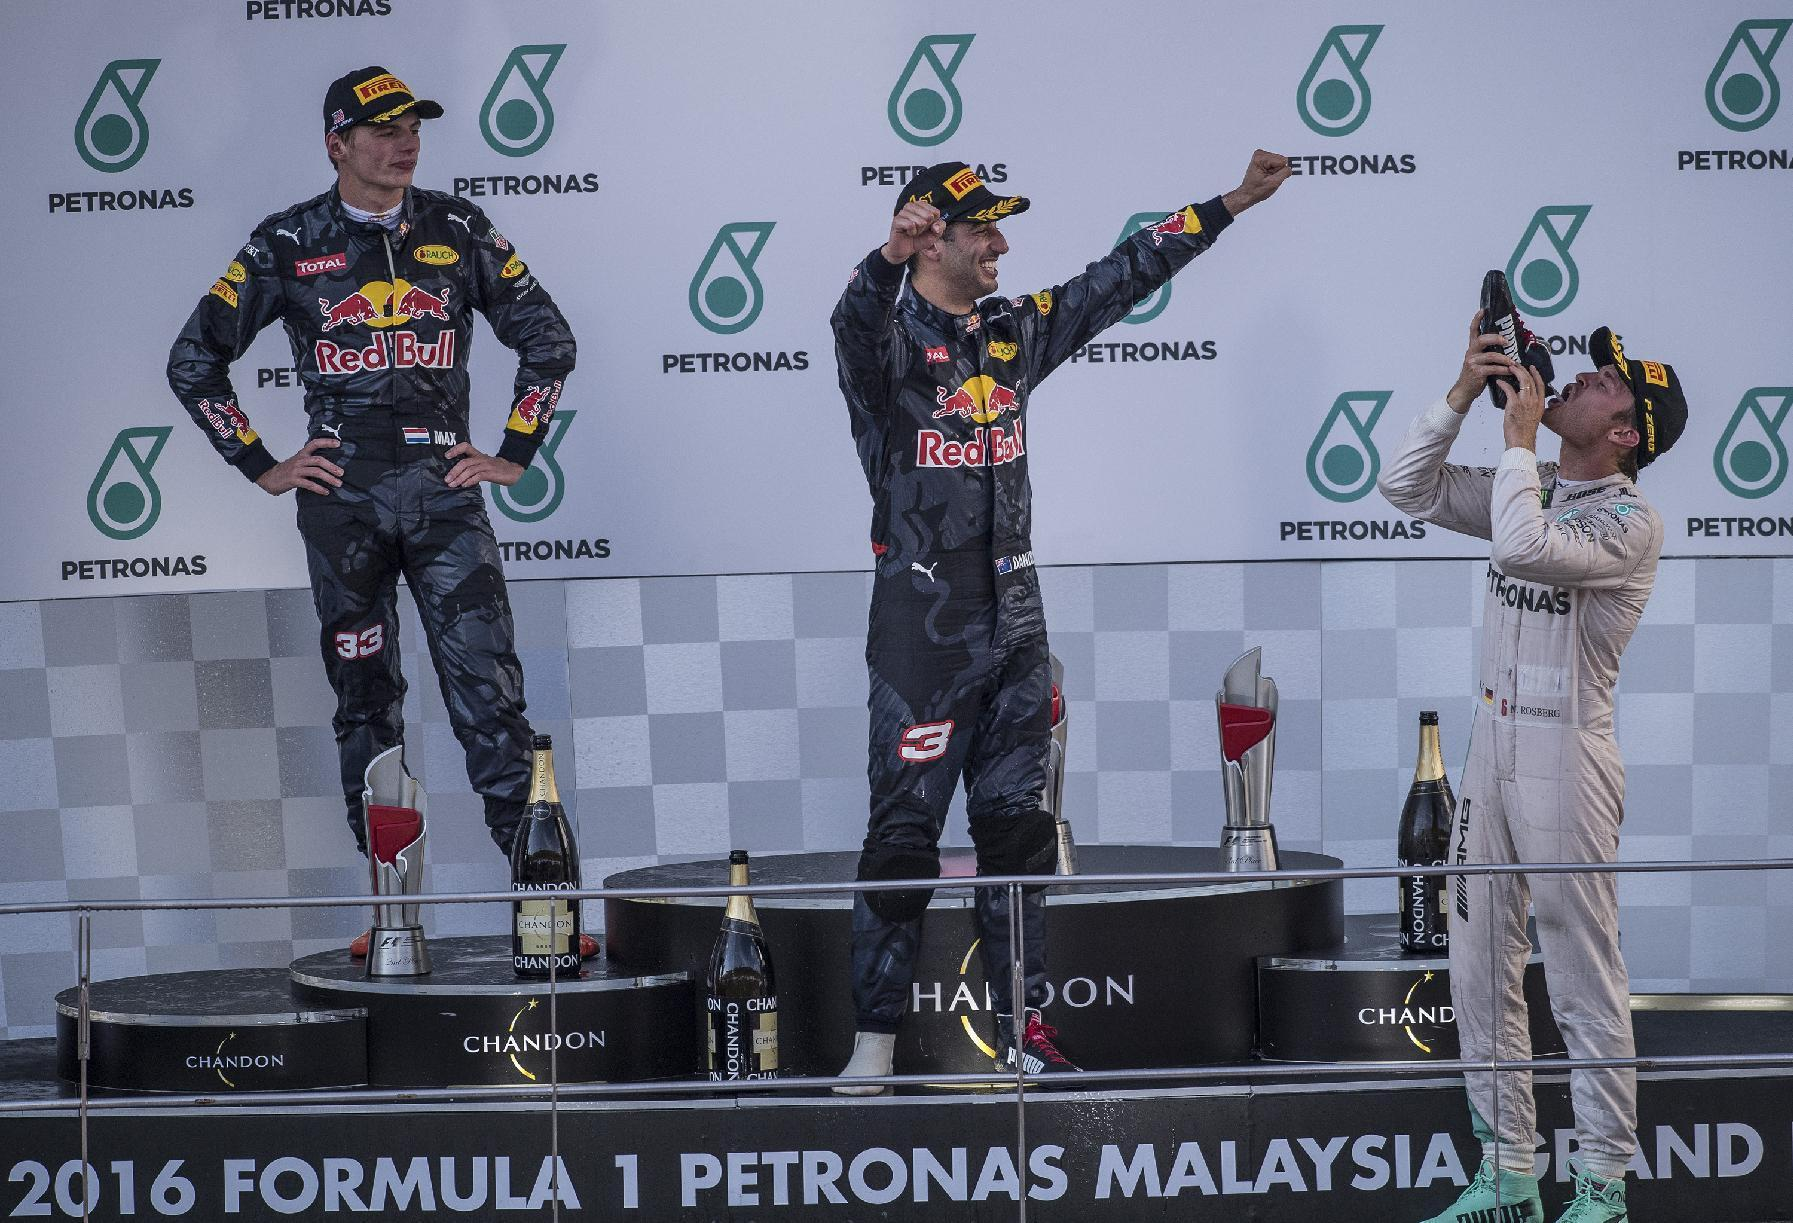 Formula Onr - Malaysia to pull out of F1 after 2018